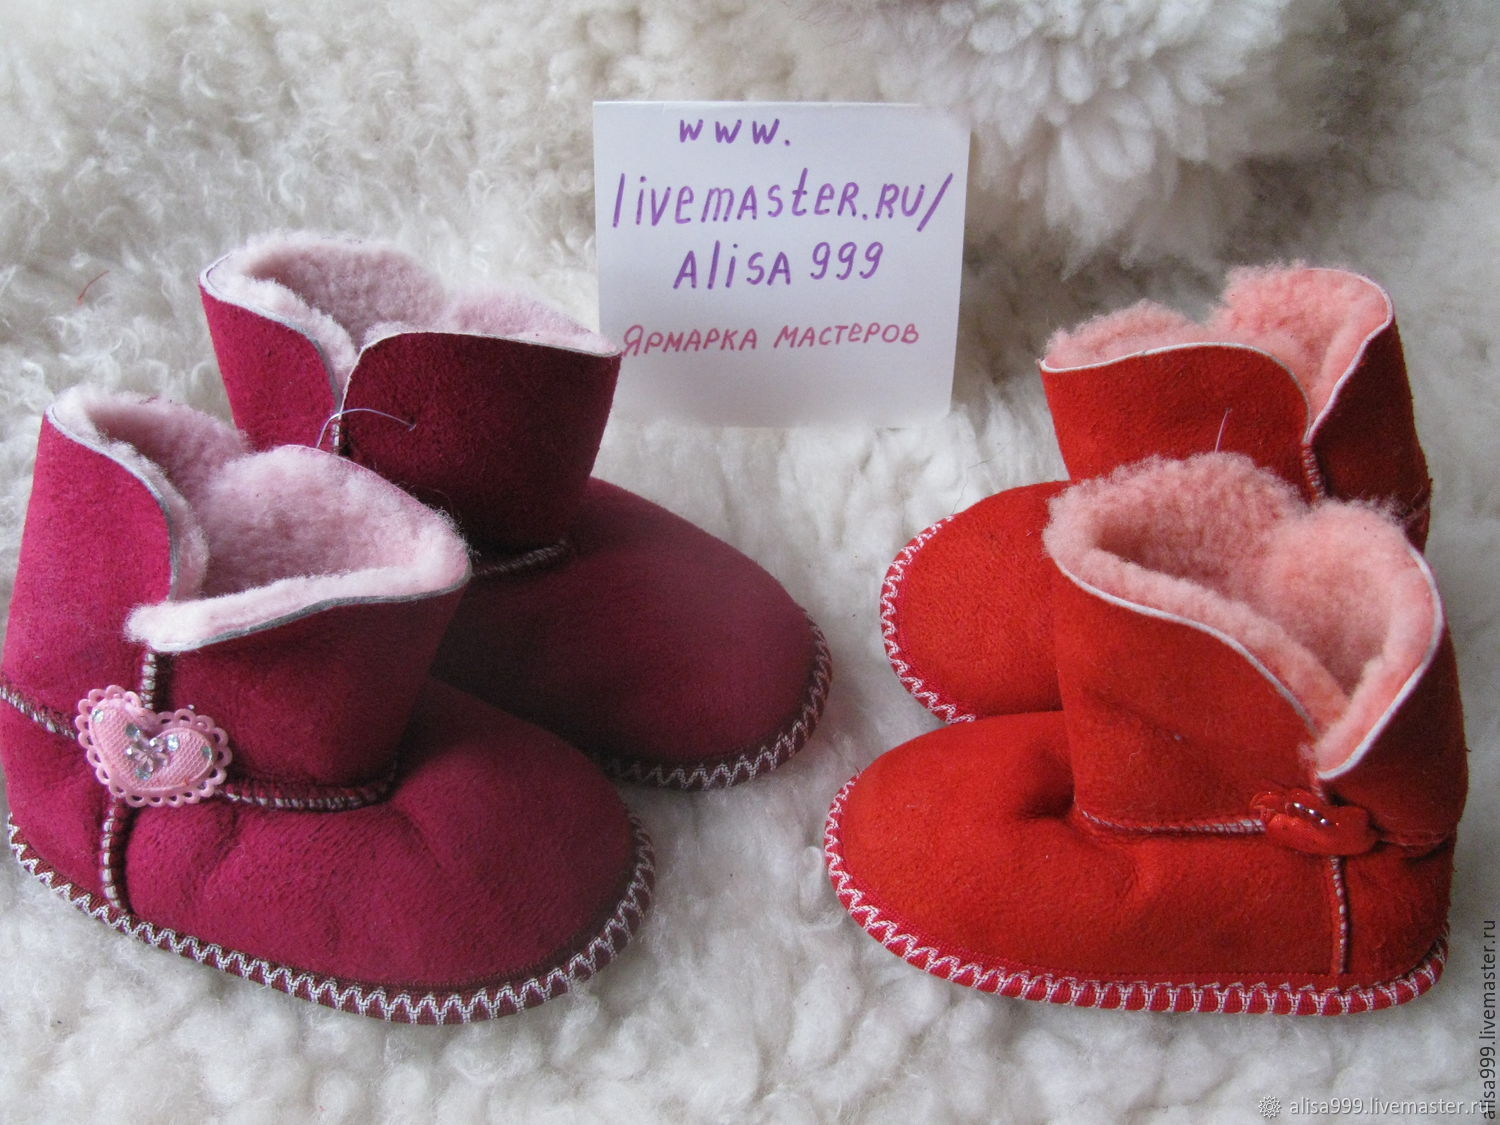 Homemade ugg boots made of sheepskin 21-25 sizes, Slippers, Moscow,  Фото №1